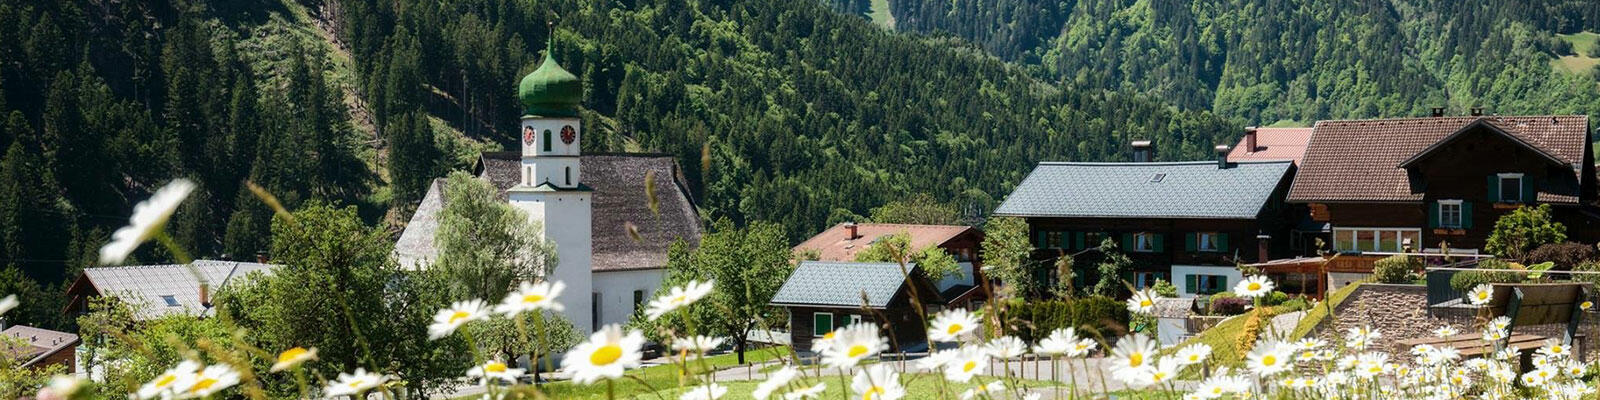 St. Gallenkirch im Montafon